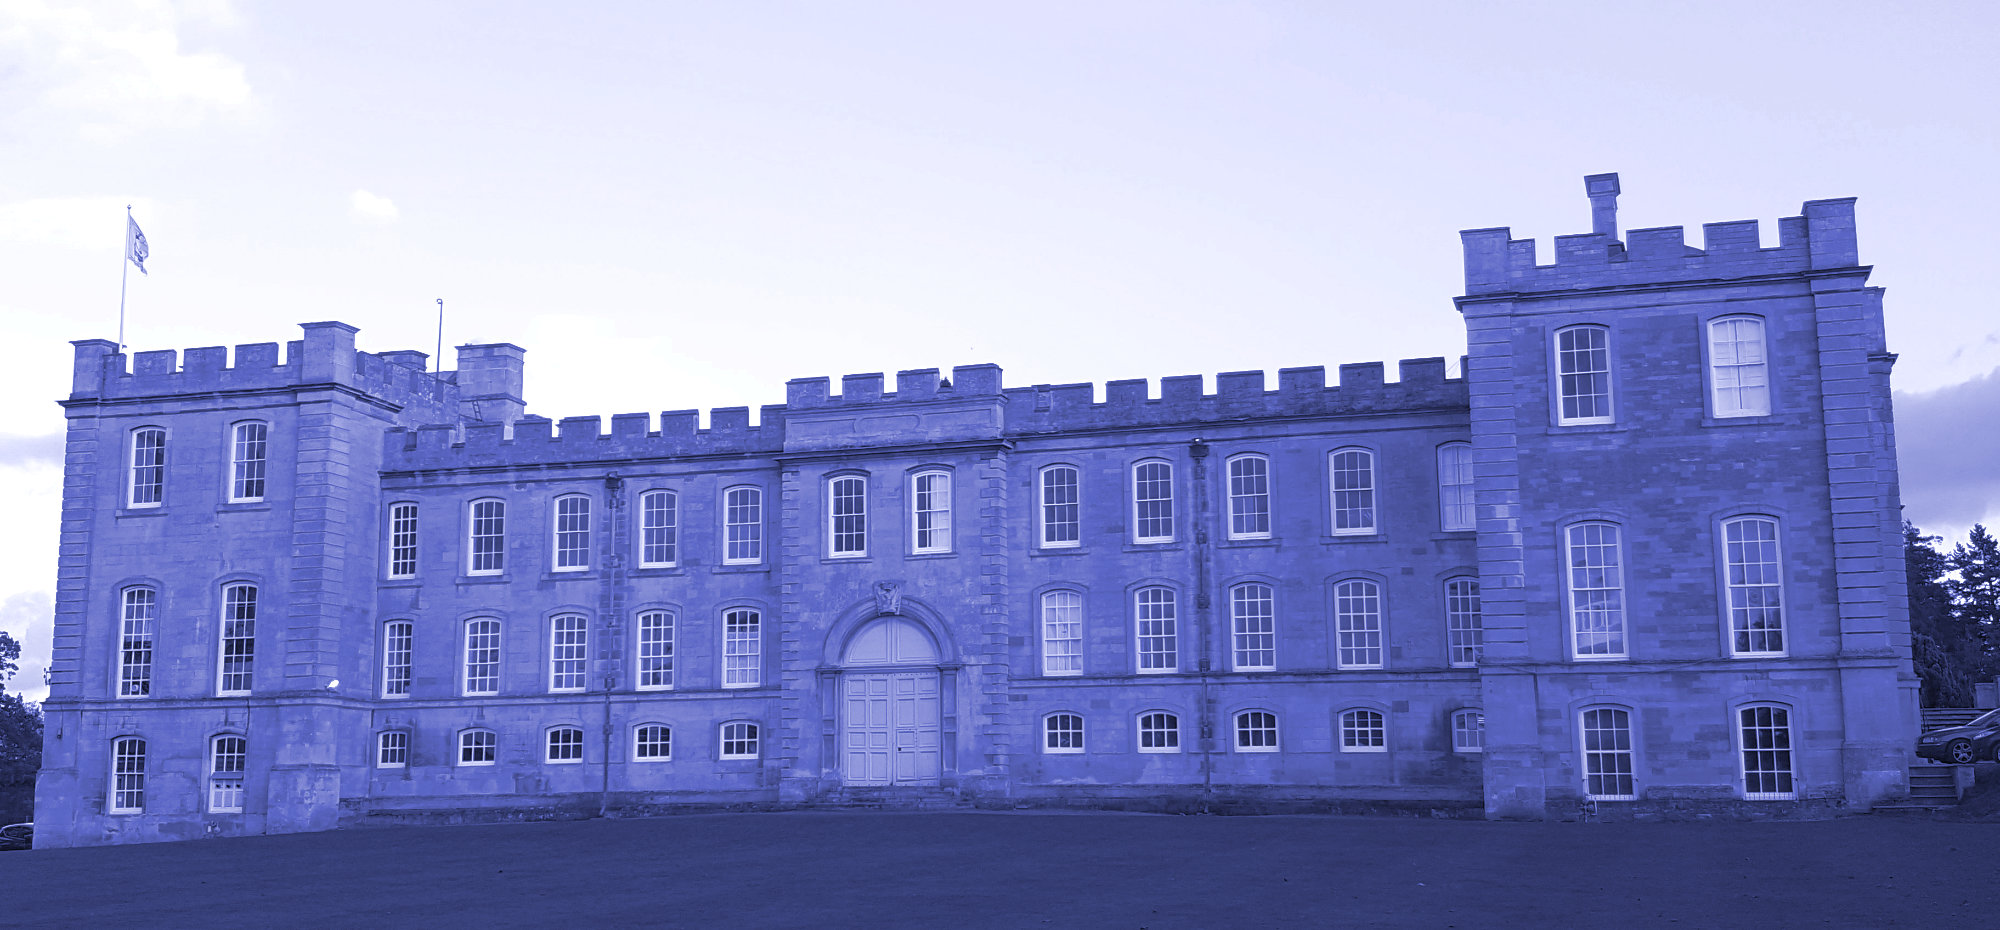 Episode 14 – Kimbolton Castle